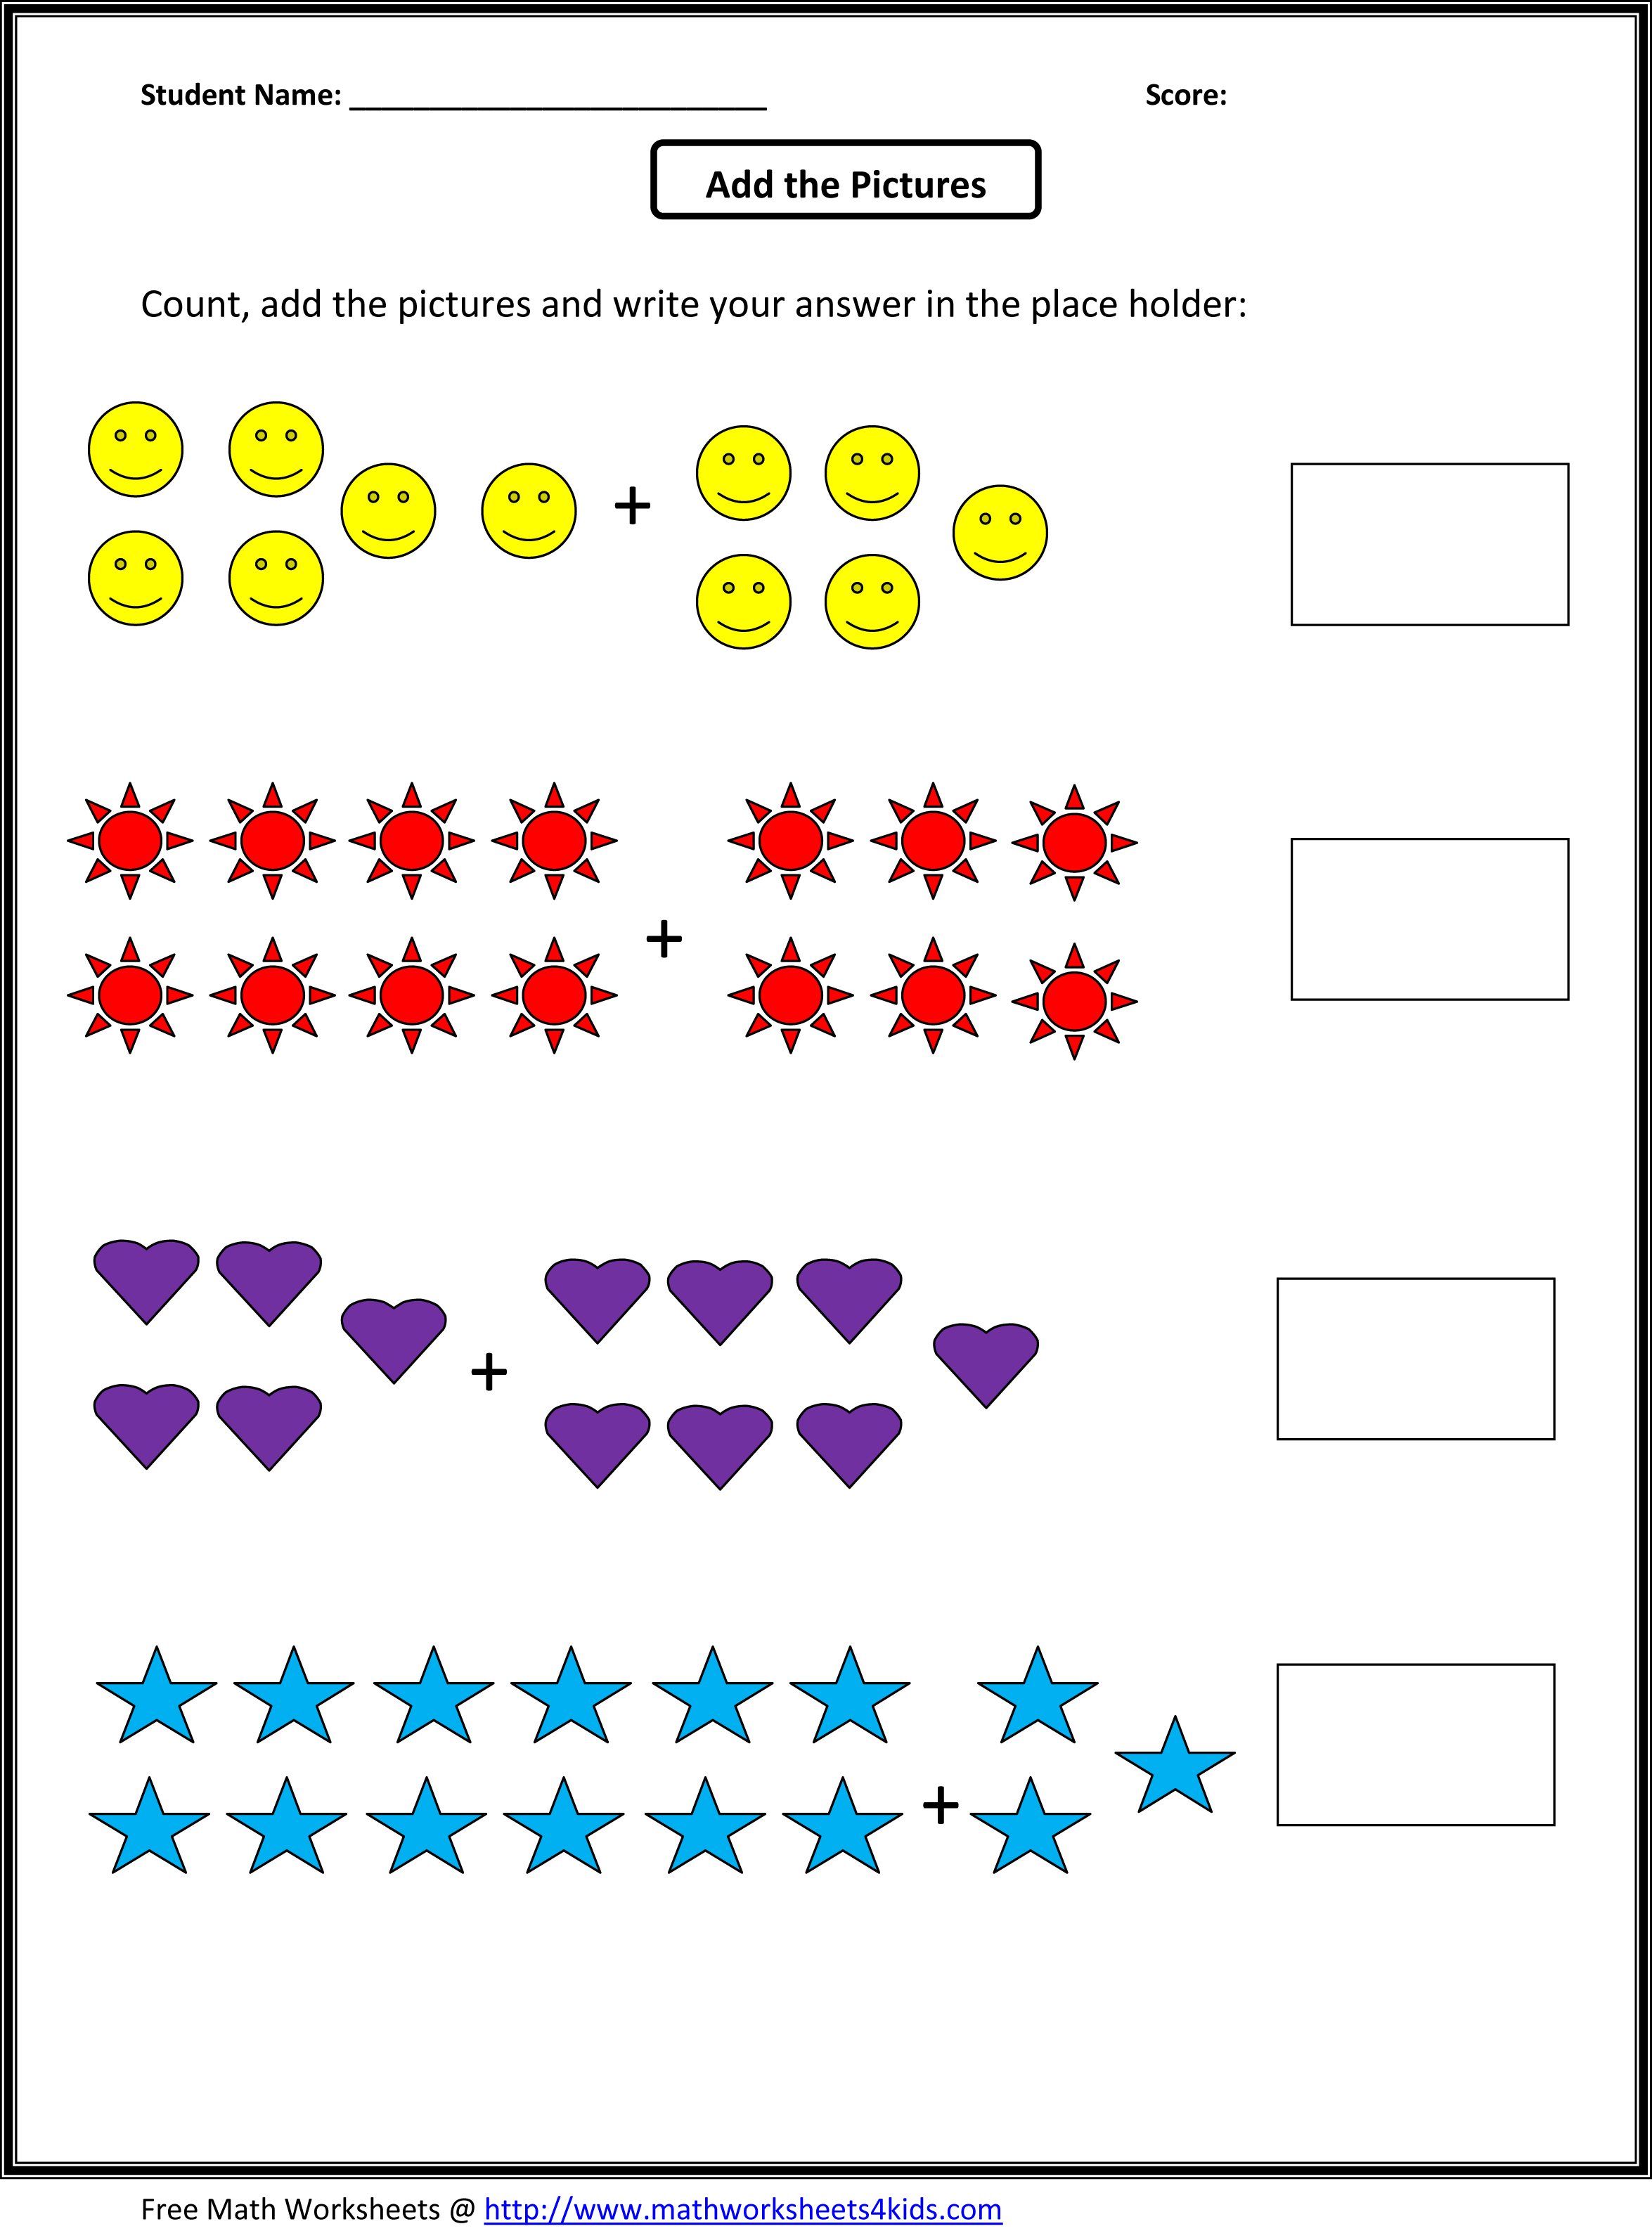 Proatmealus  Sweet Grade  Maths Worksheet  Reocurent With Goodlooking Math Worksheets For St Grade Free  Reocurent With Beautiful Adjective Worksheets Th Grade Also Rotations Worksheet Th Grade In Addition Occupational Therapy Worksheets And Interpreting Text And Visuals Worksheet As Well As Ou Worksheets Additionally Comparison Shopping Worksheets From Reocurentcom With Proatmealus  Goodlooking Grade  Maths Worksheet  Reocurent With Beautiful Math Worksheets For St Grade Free  Reocurent And Sweet Adjective Worksheets Th Grade Also Rotations Worksheet Th Grade In Addition Occupational Therapy Worksheets From Reocurentcom